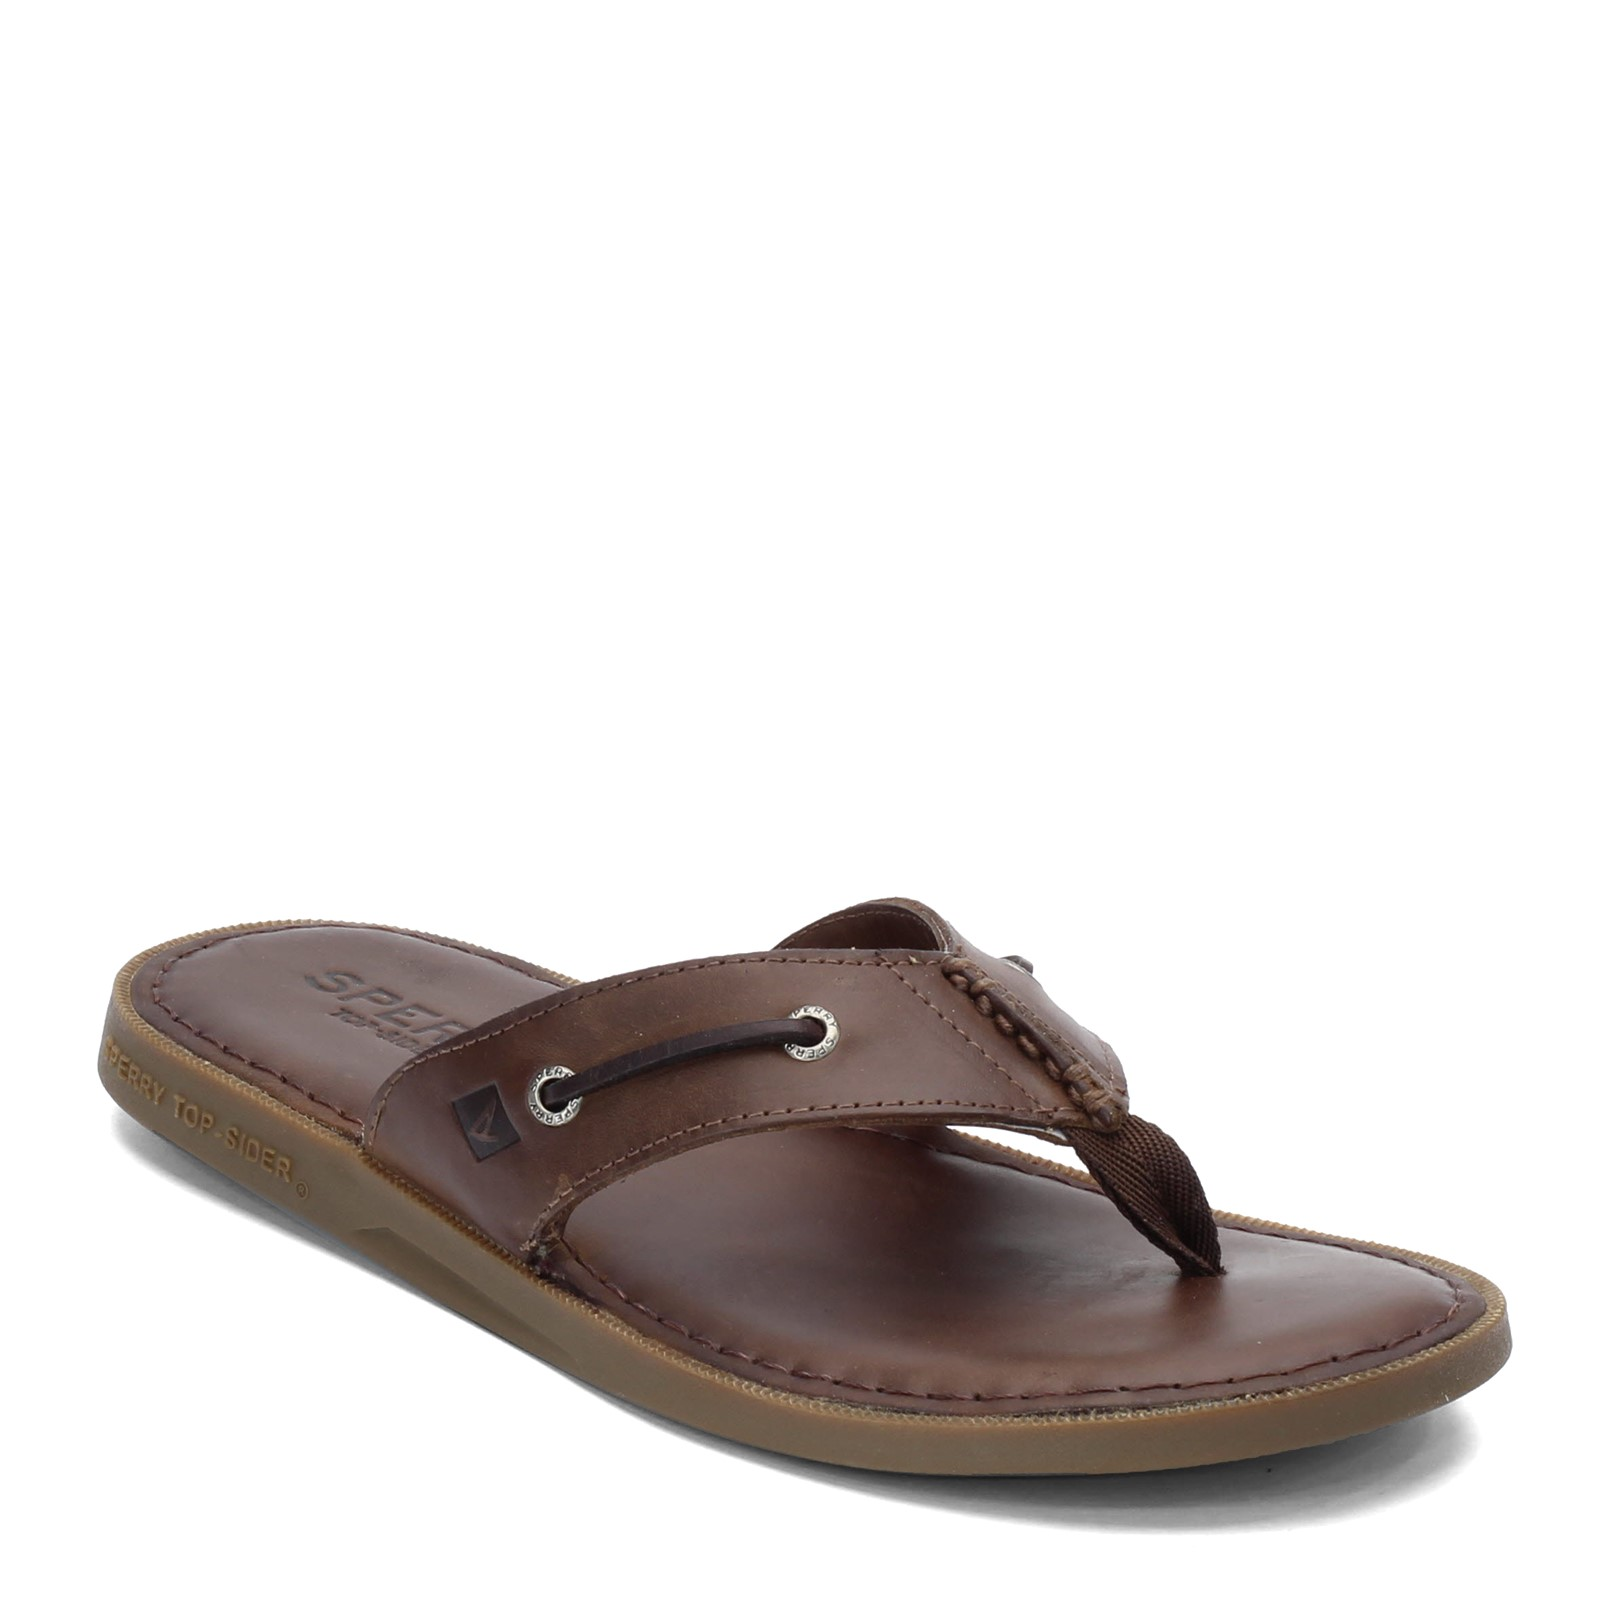 Men's Sperry, Authentic Original Thong Sandal